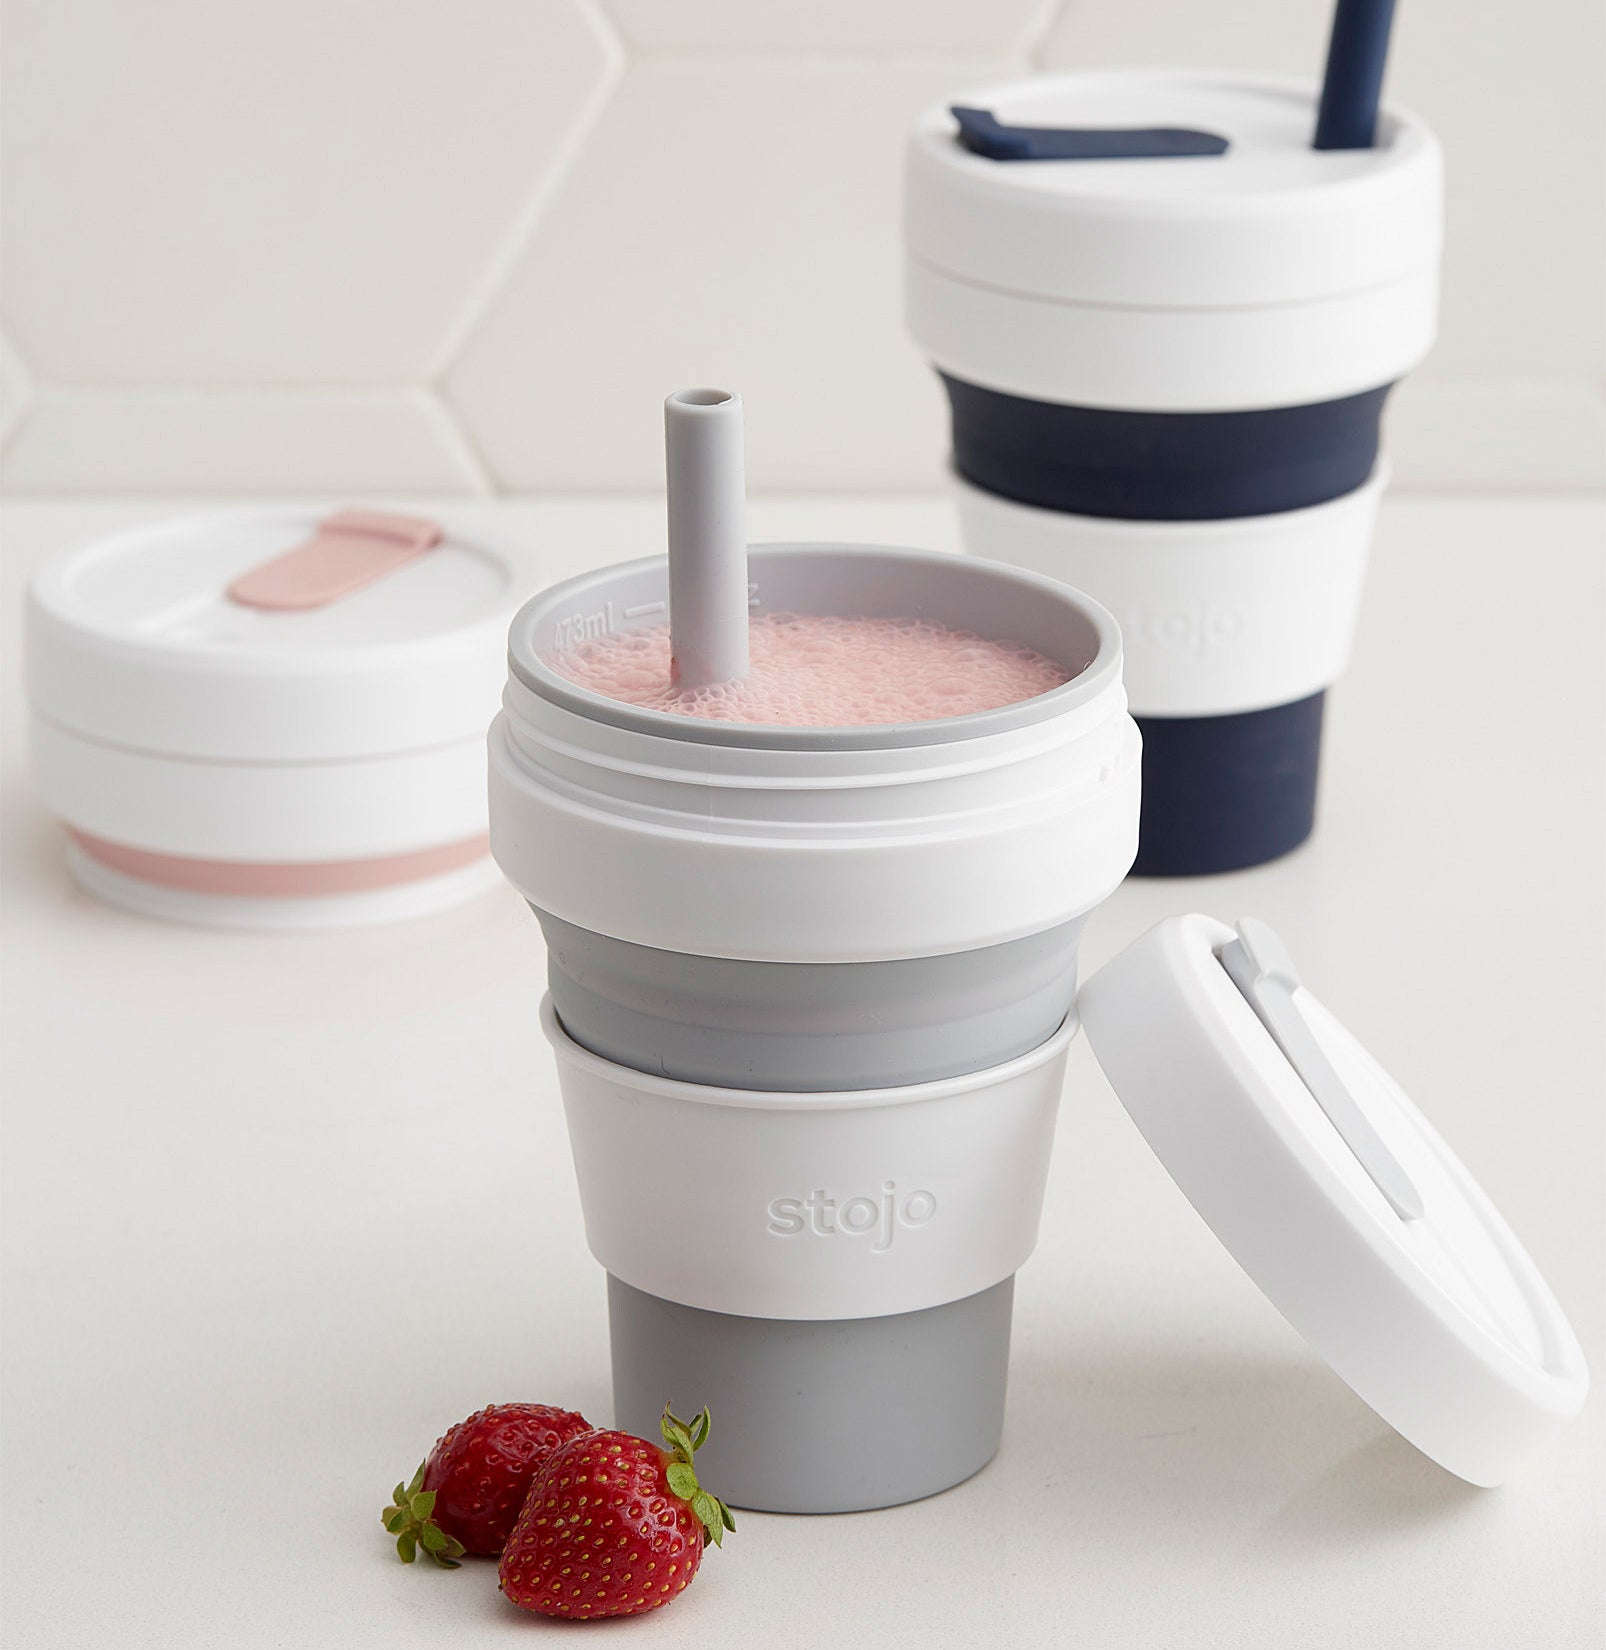 A silicone cup with a strawberry smoothie inside